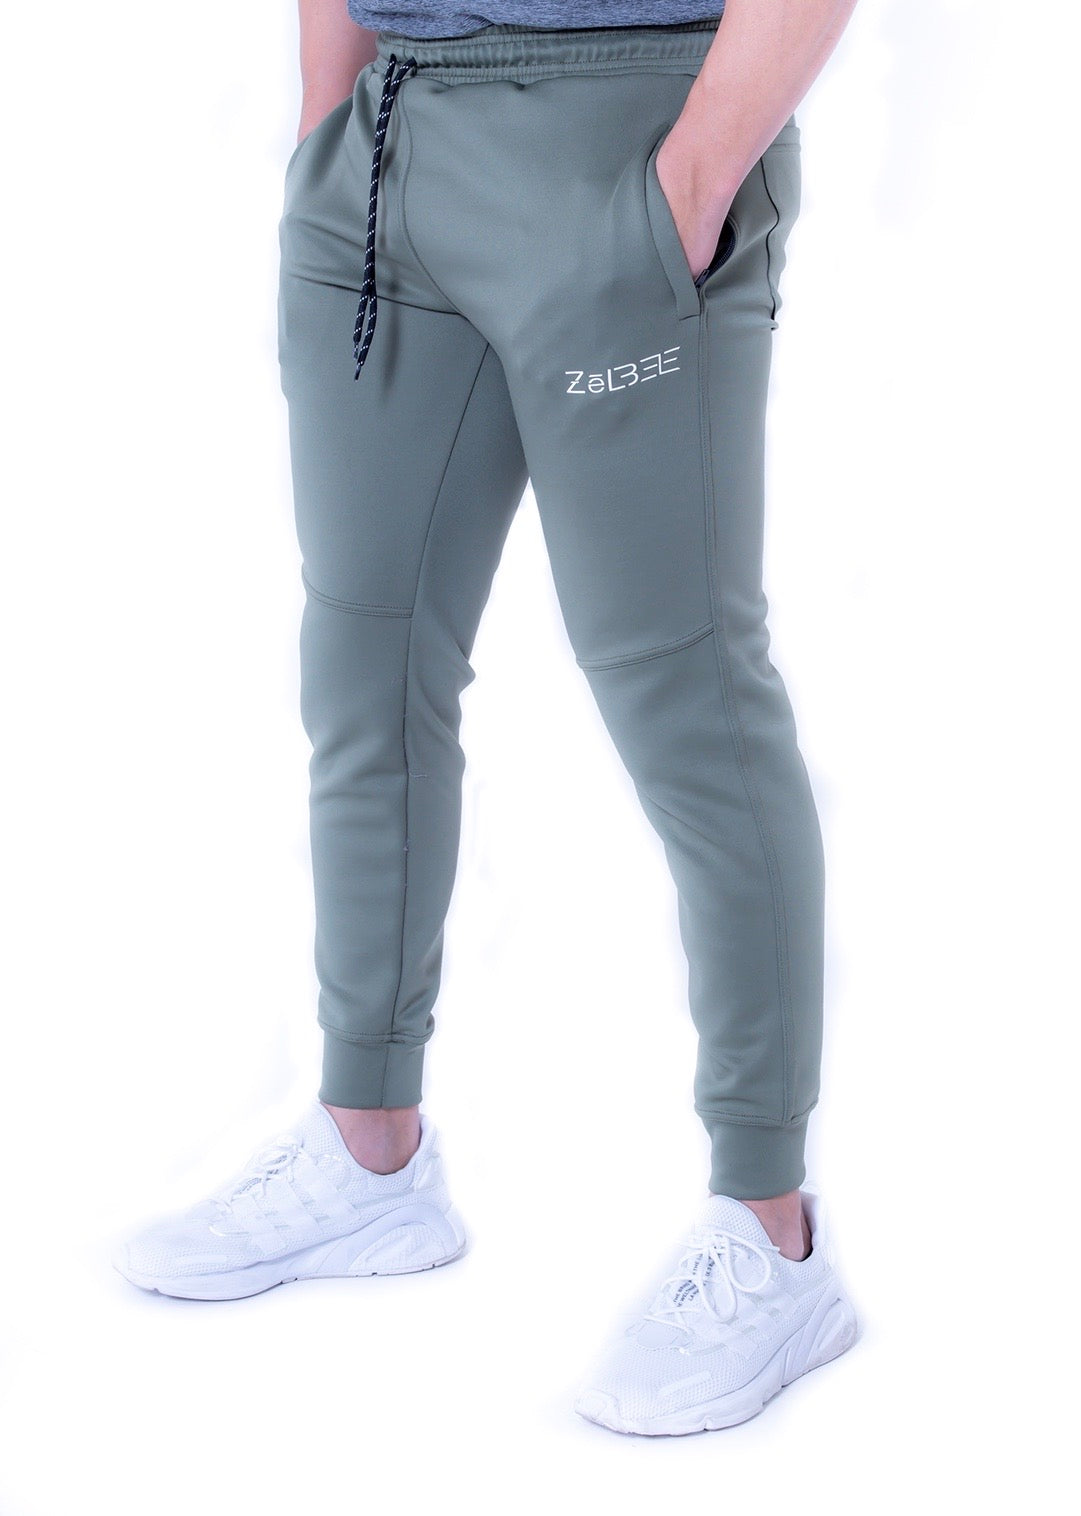 P1 Joggers